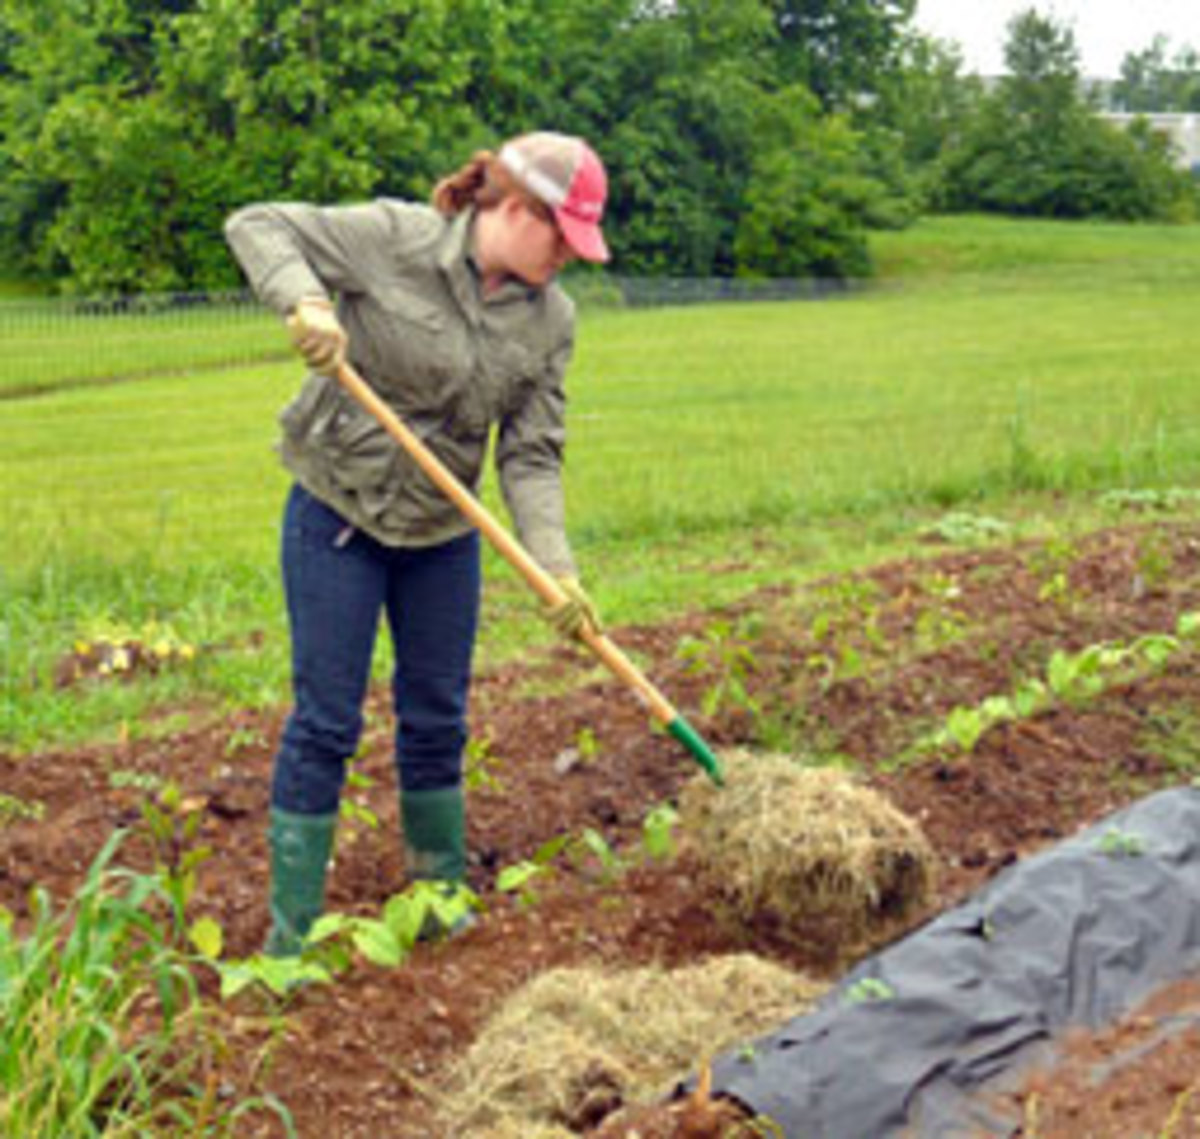 Mulching in a vegetable garden helps to retain moisture and to keep weeds at bay. Typically, straw or leaves are used here instead of bark chips.